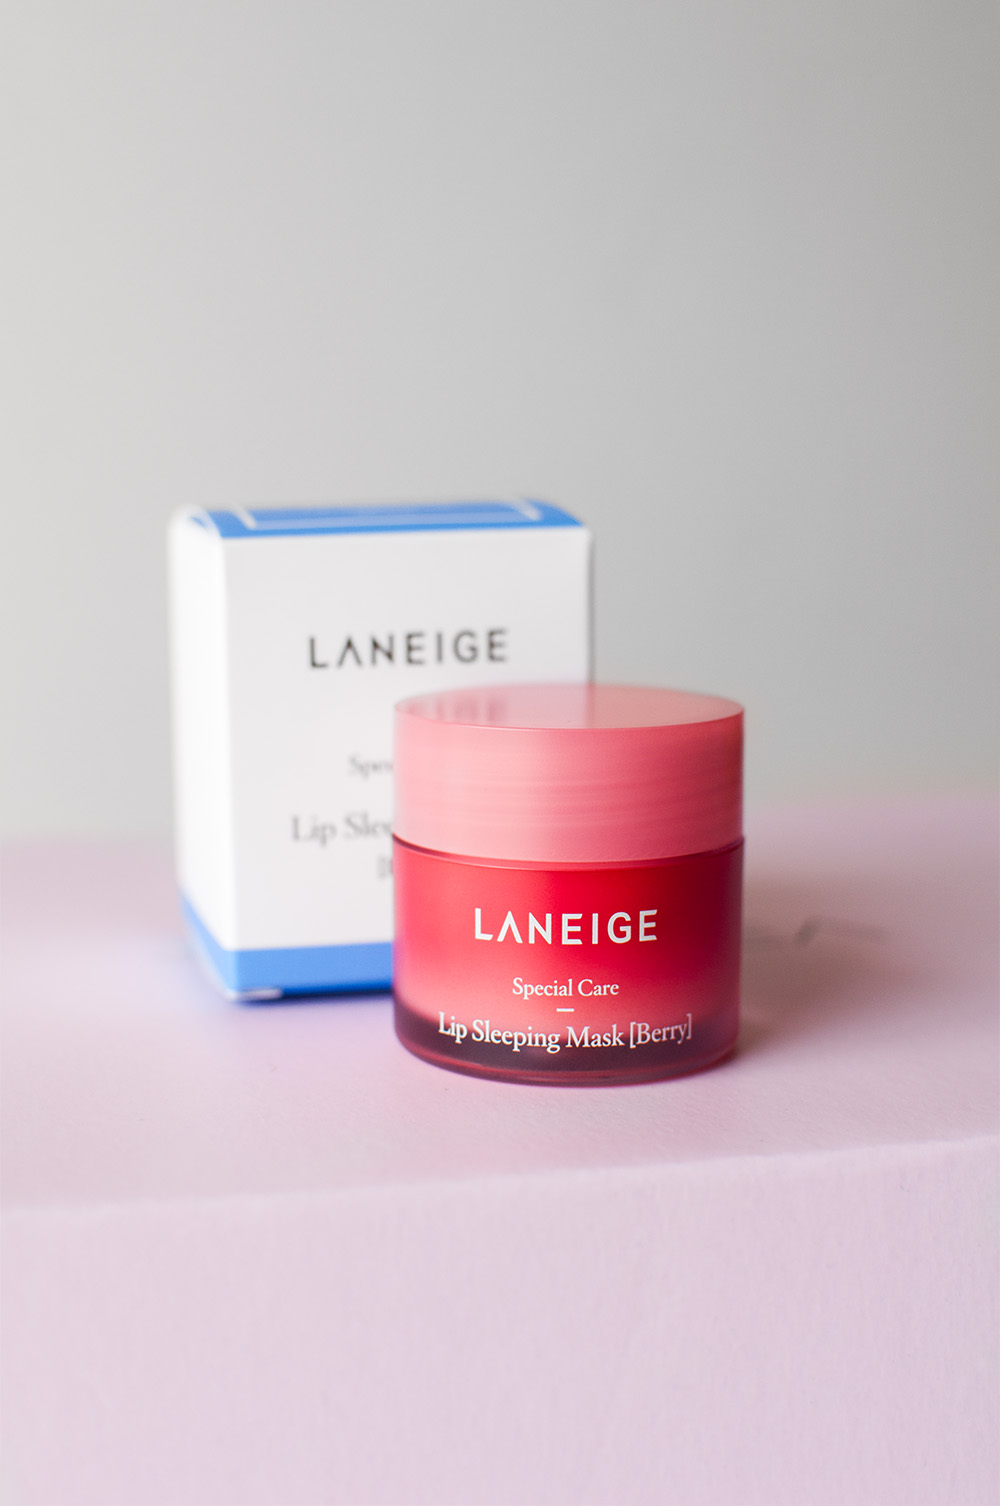 laneige lip sleeping mask, laneige mask, laneige lip mask, laneige berry mask, laneige overnight lip mask